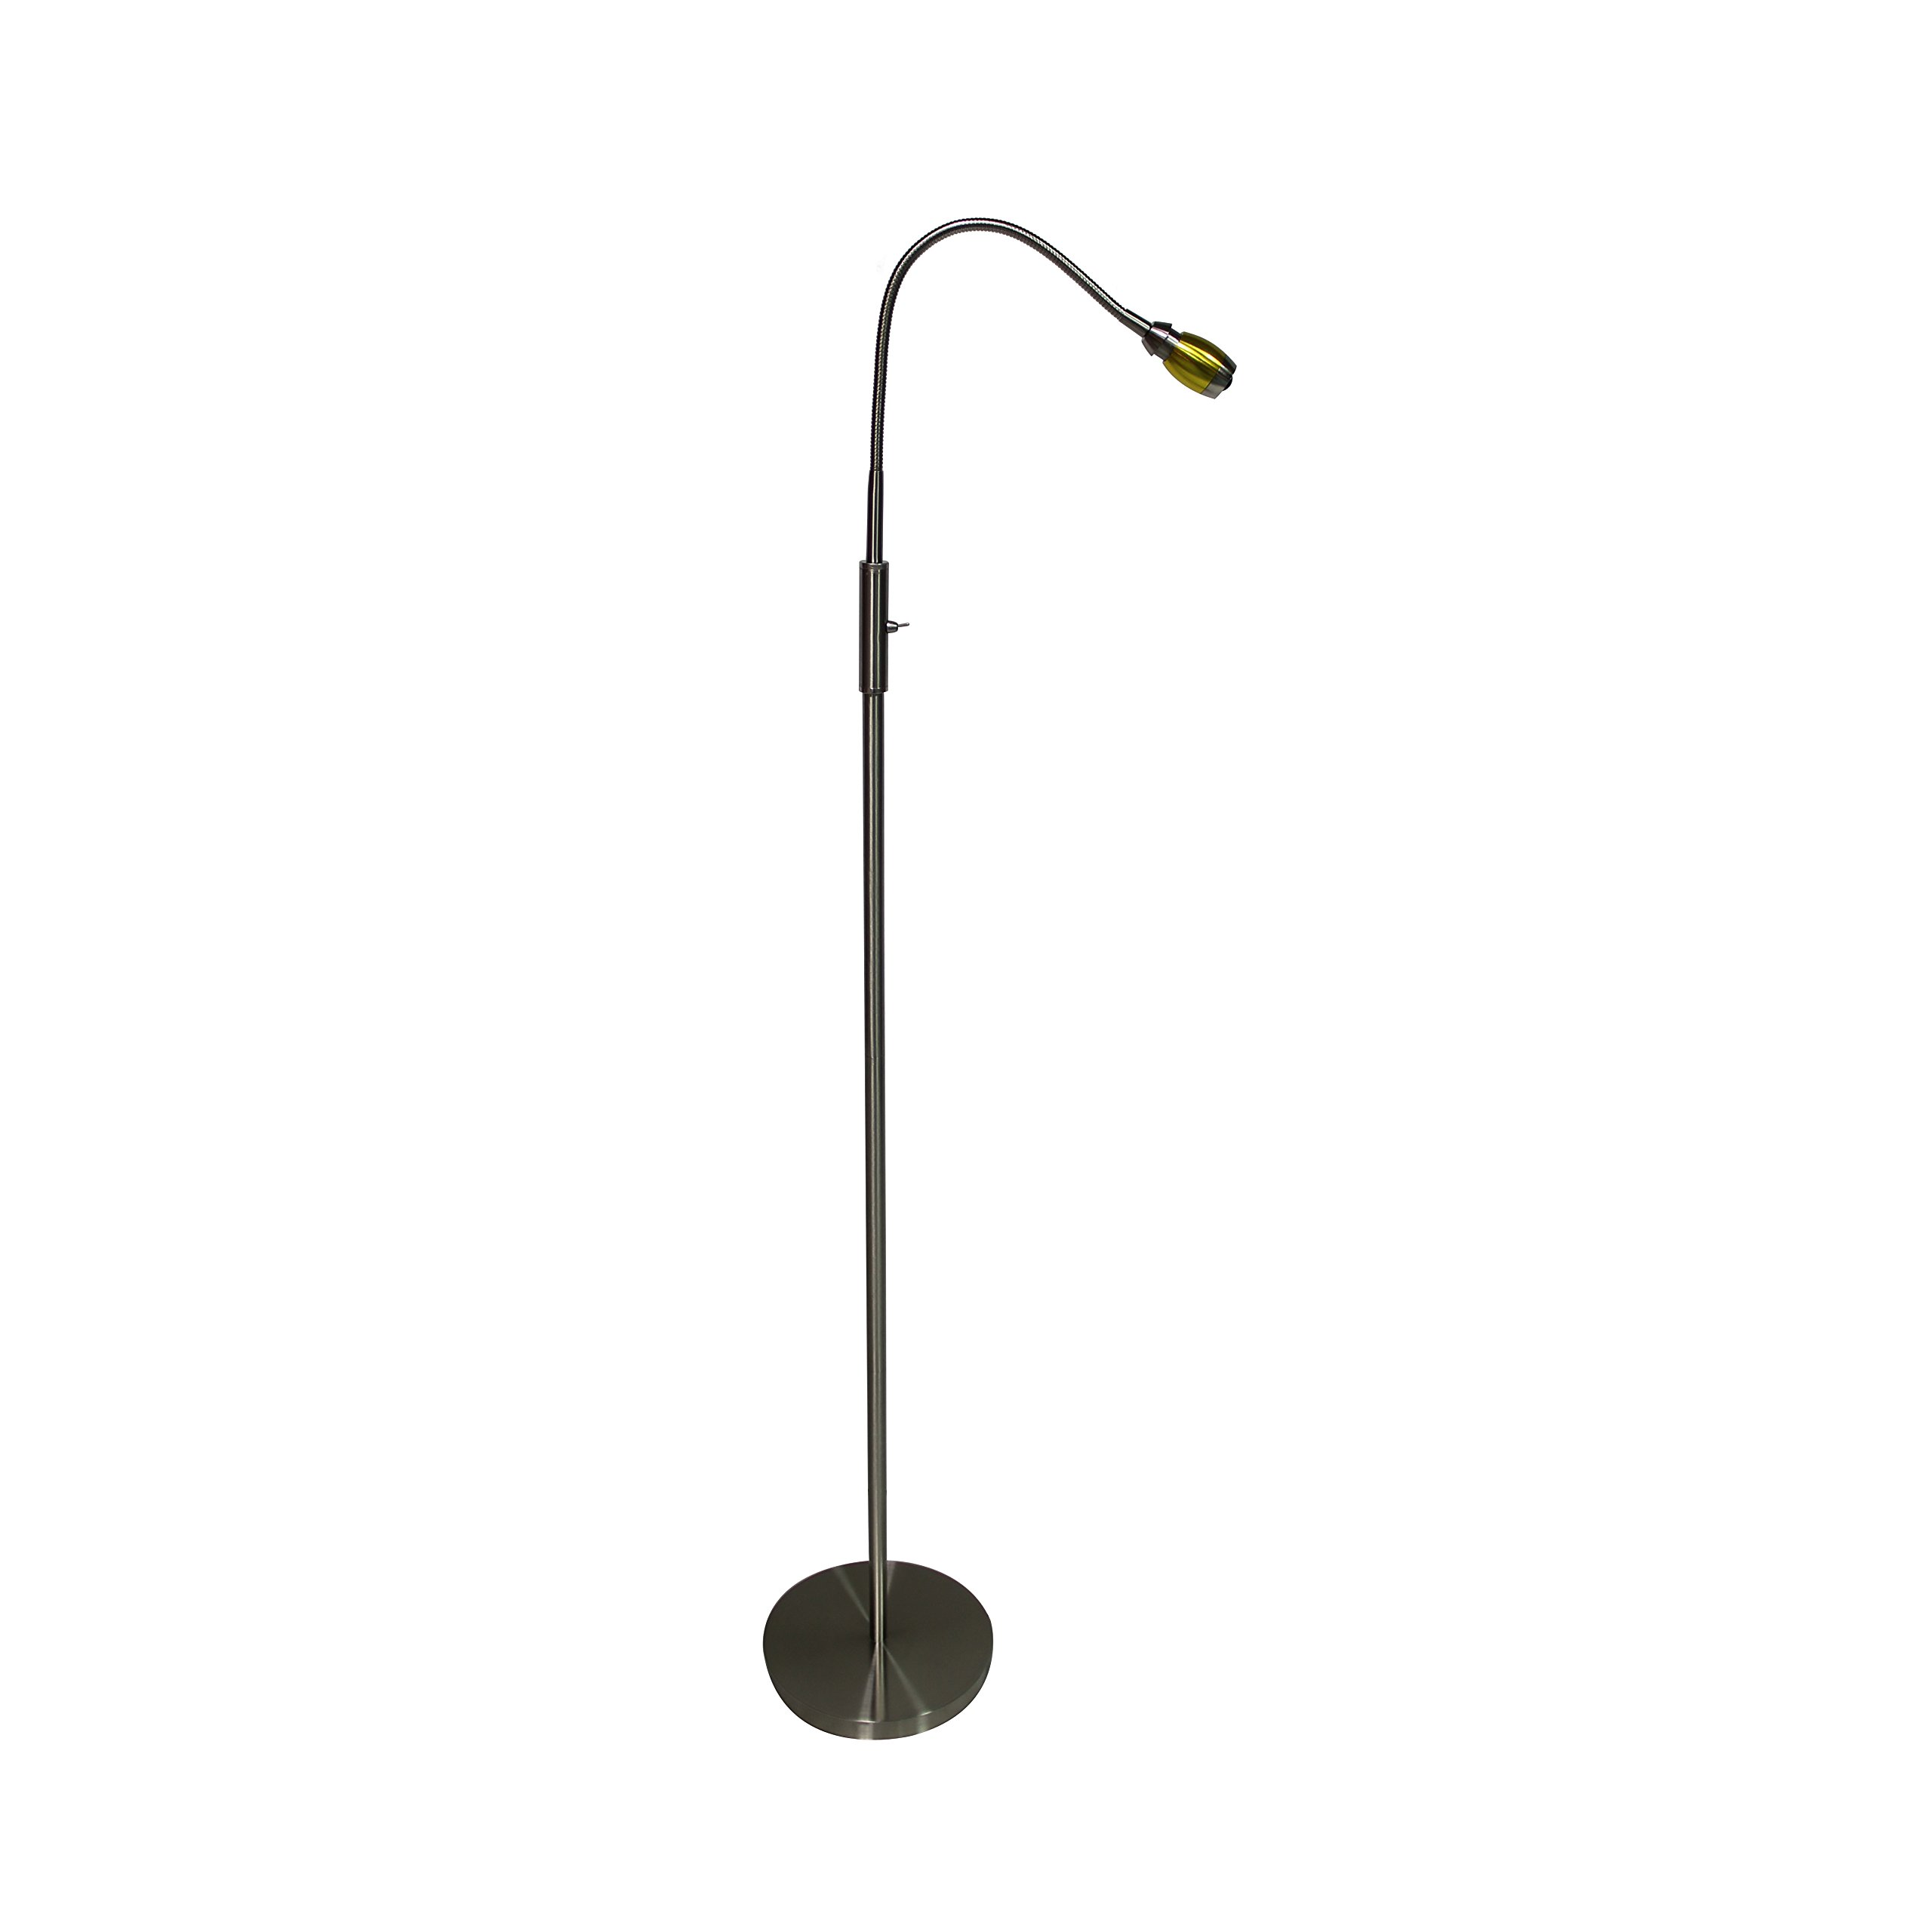 daylight24 402071-39 FOCUS Adjustable Beam LED Floor Lamp, Gold by daylight24